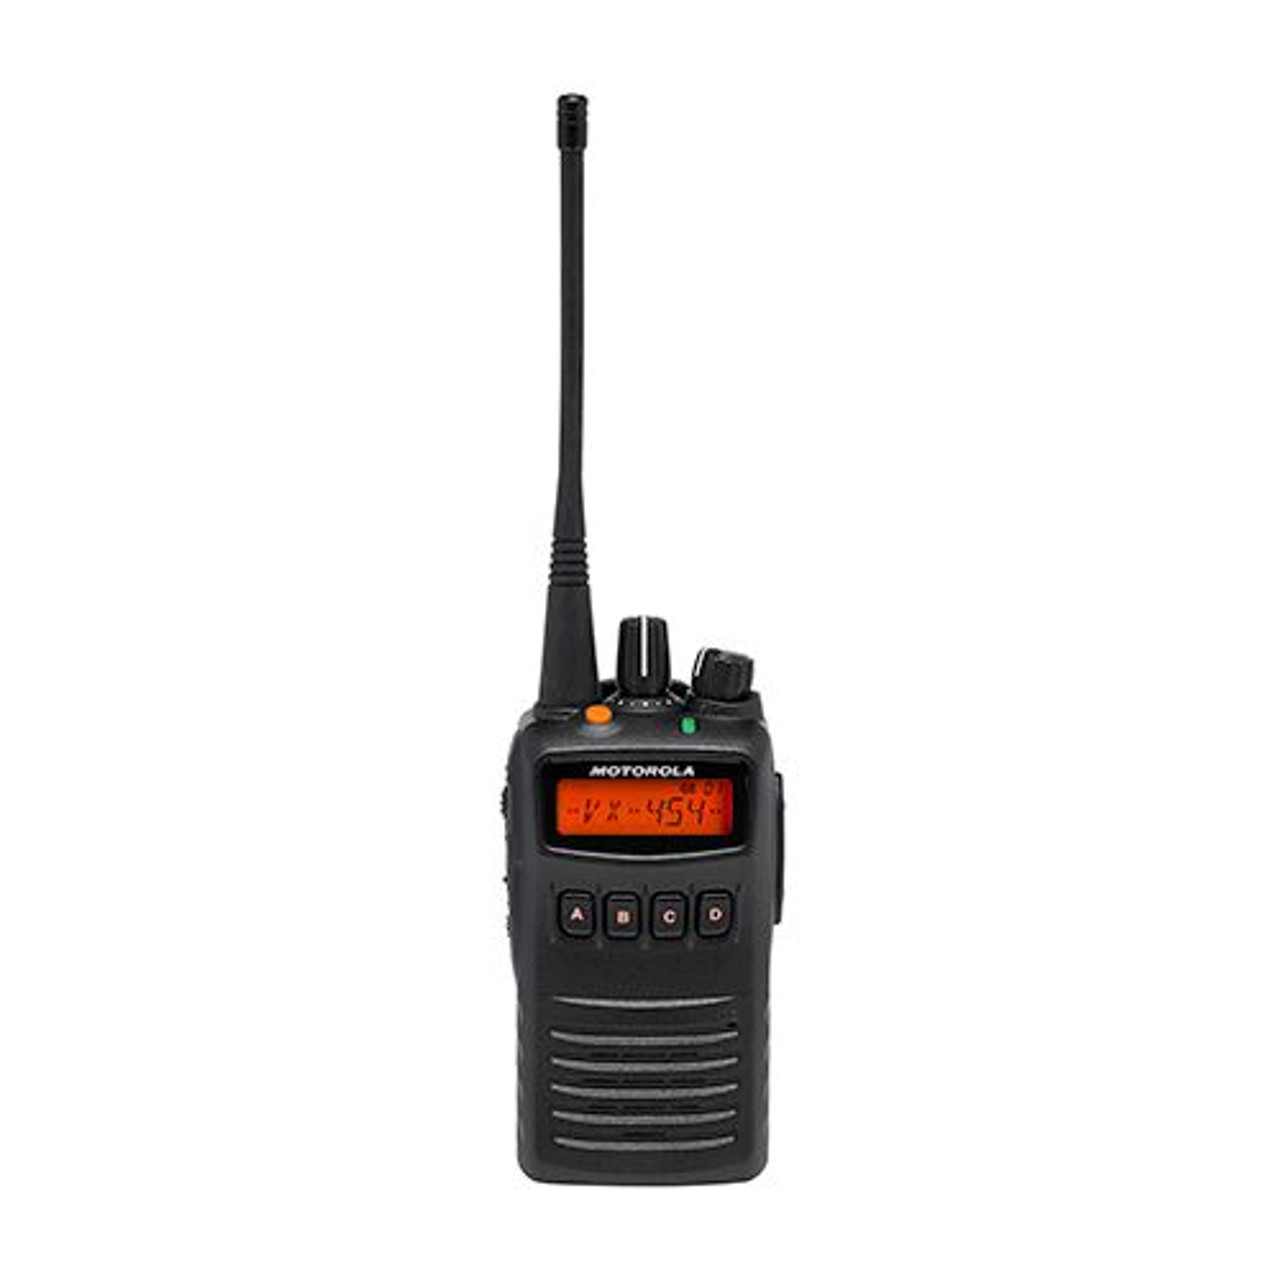 Motorola VX-454 512 Channel UHF or VHF Two Way Radio